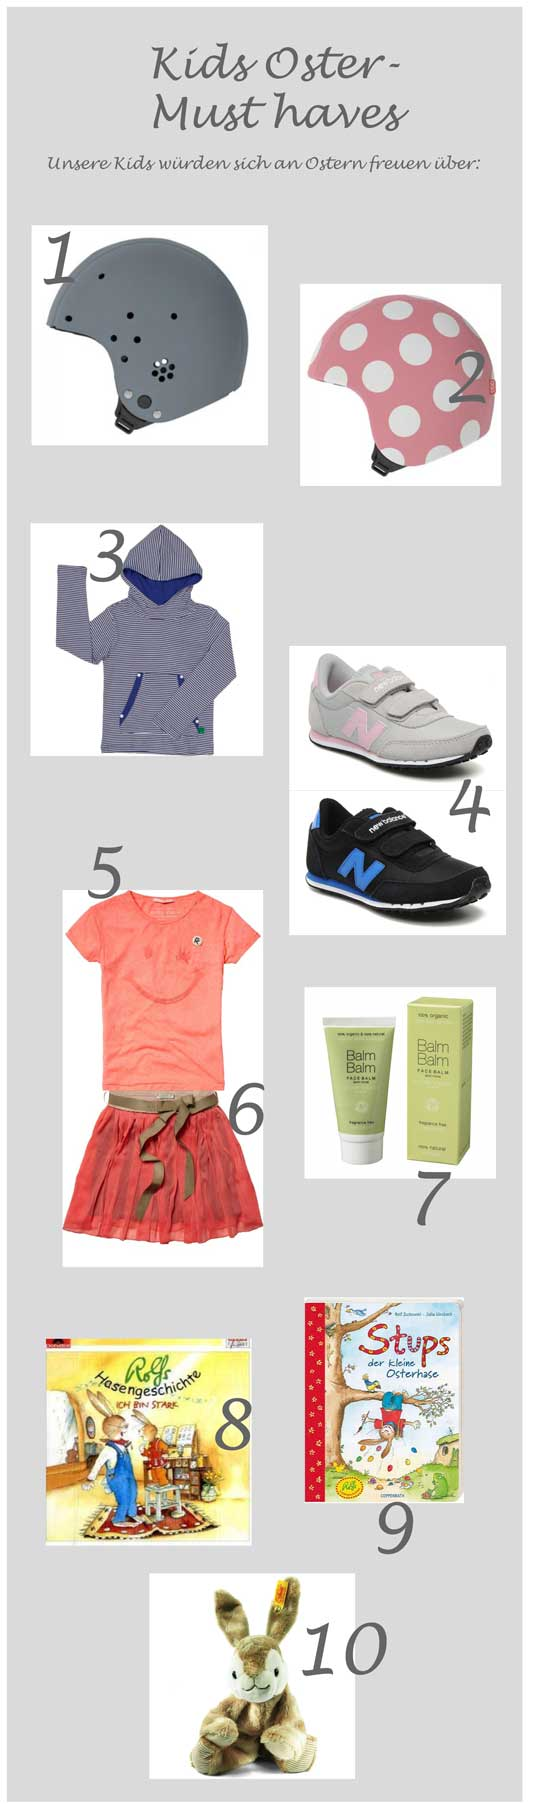 Kids-Must-haves-März